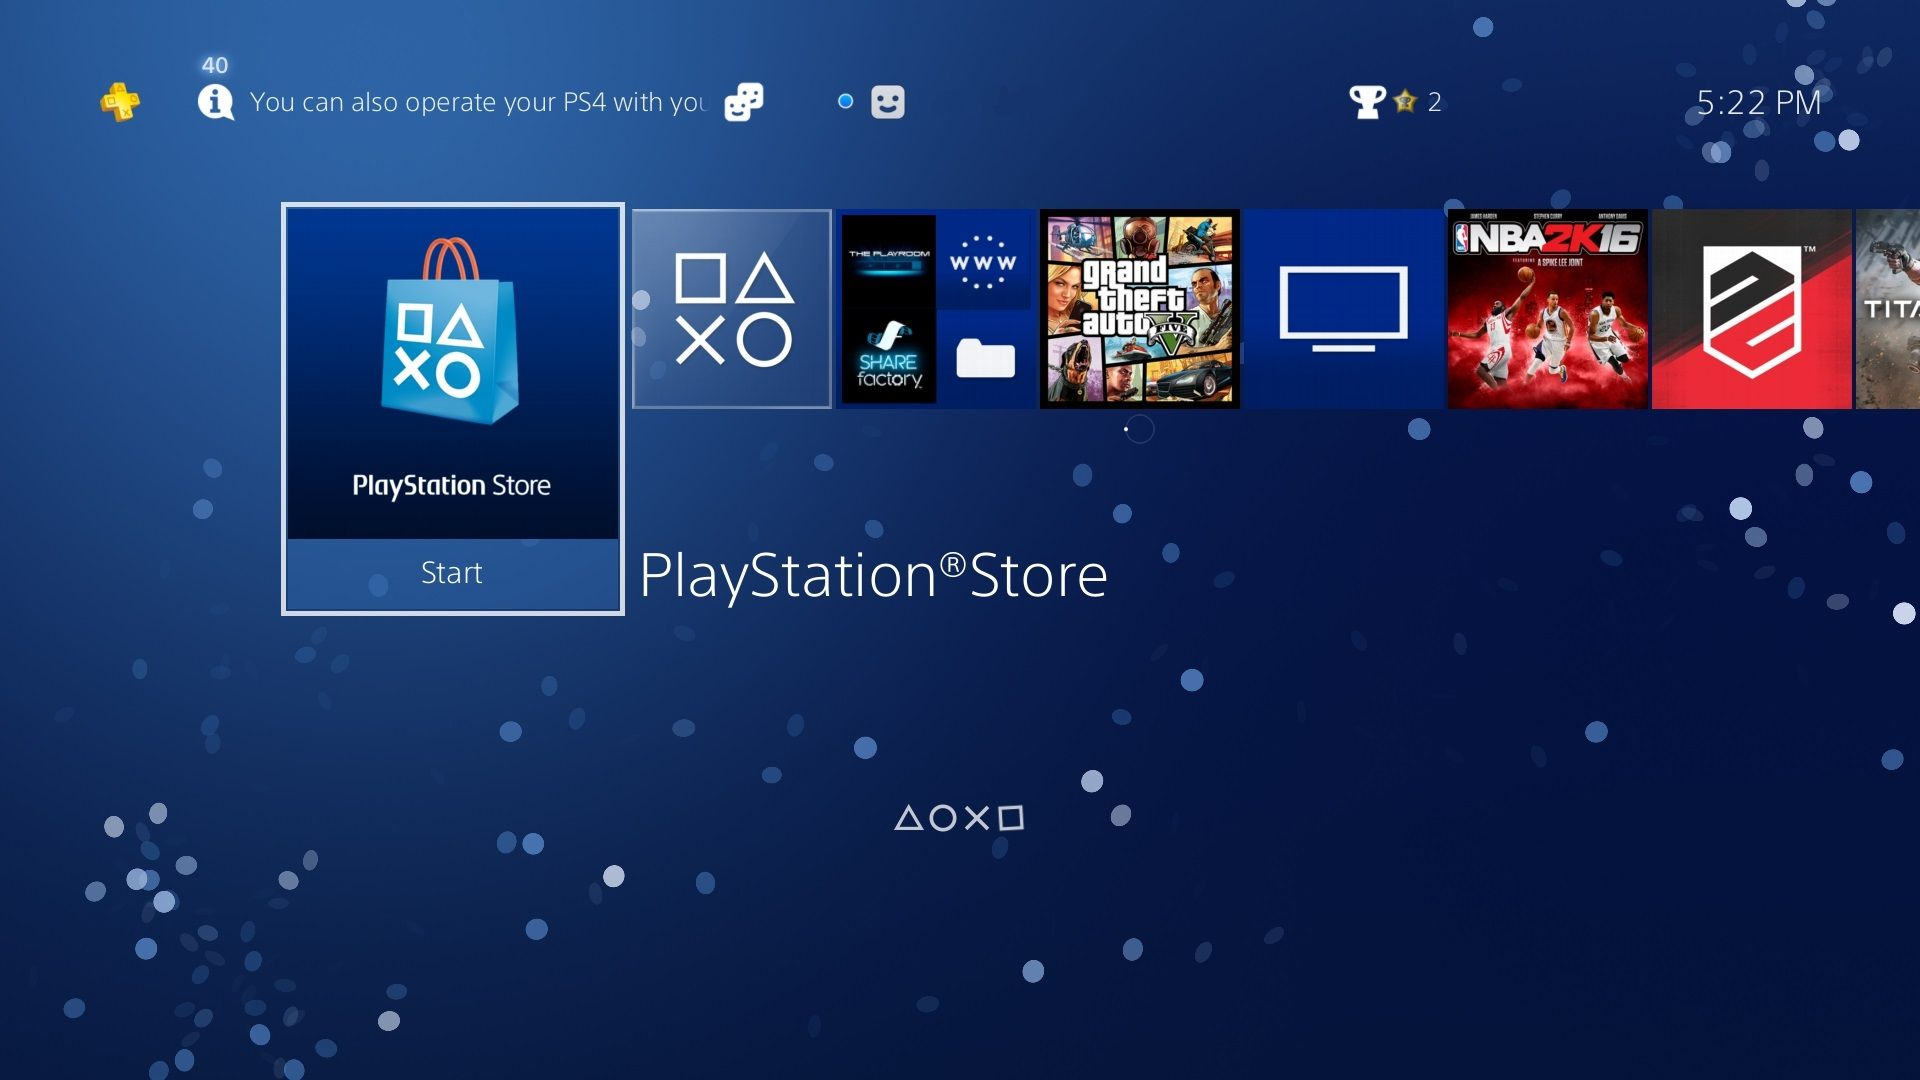 Image] Sony has added the PS3's default interactive particle theme